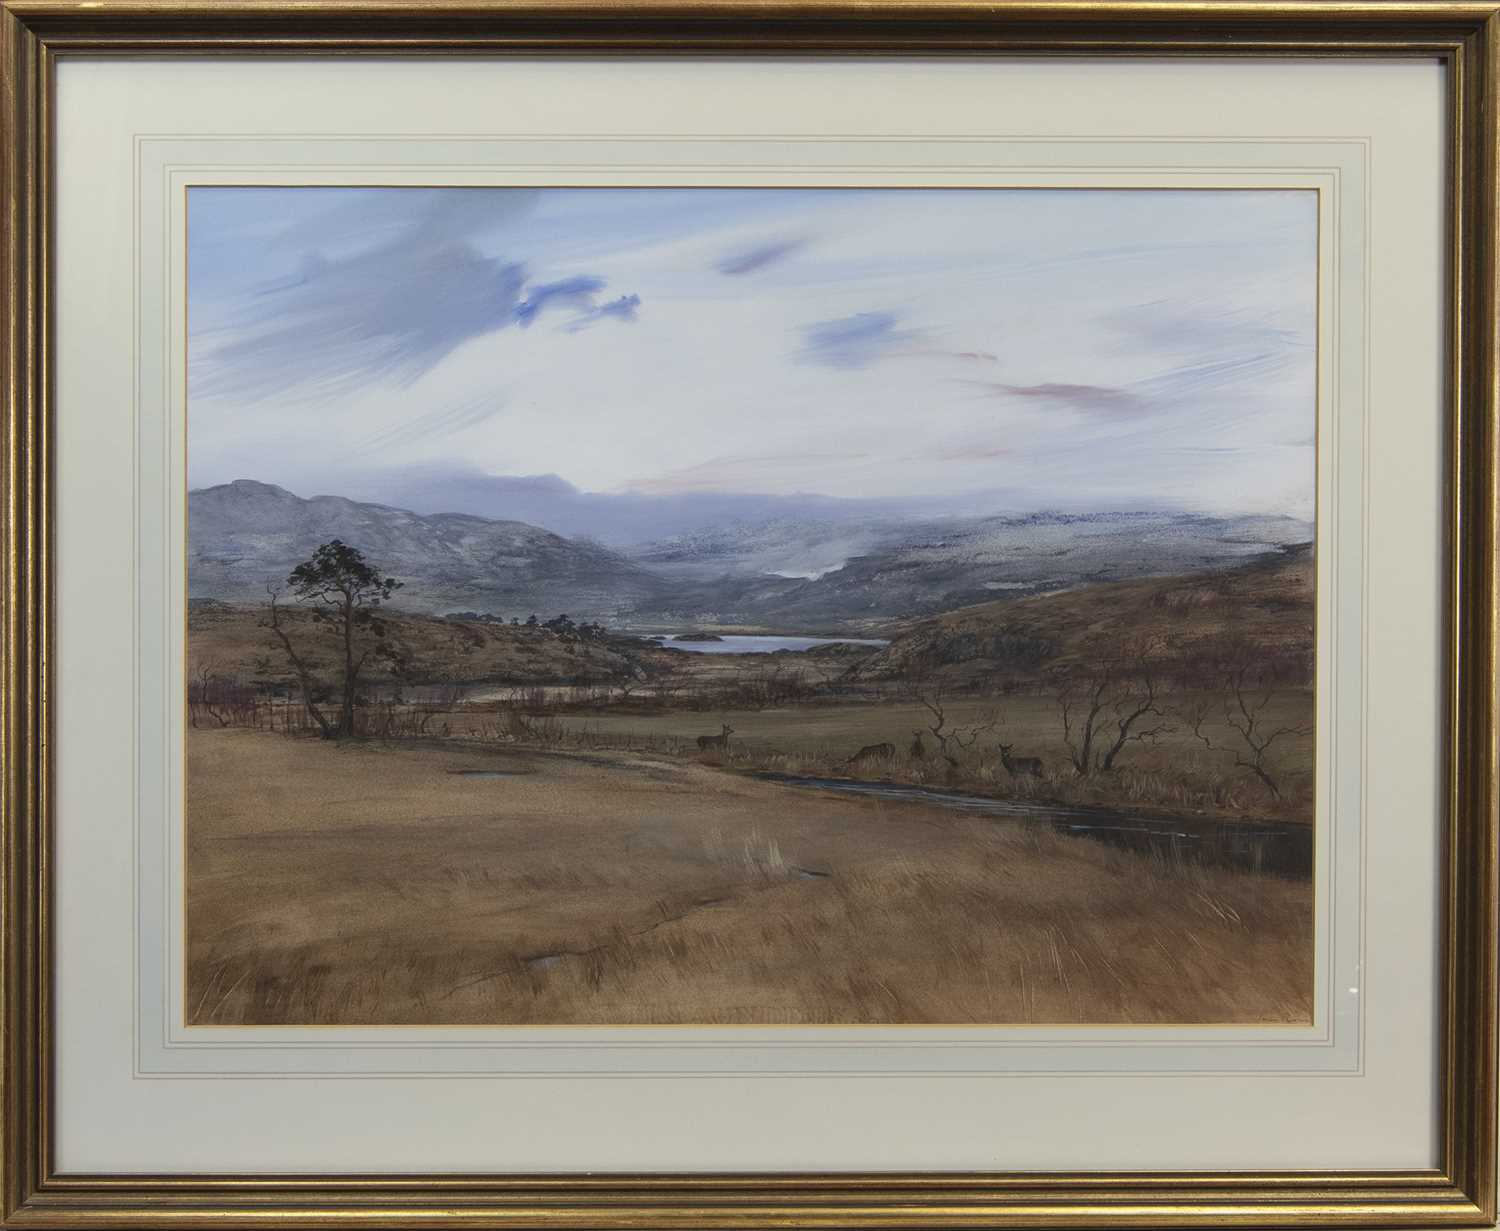 Lot 528 - HINDS AT EVENING, A MIXED MEDIA BY IAIN ROSS